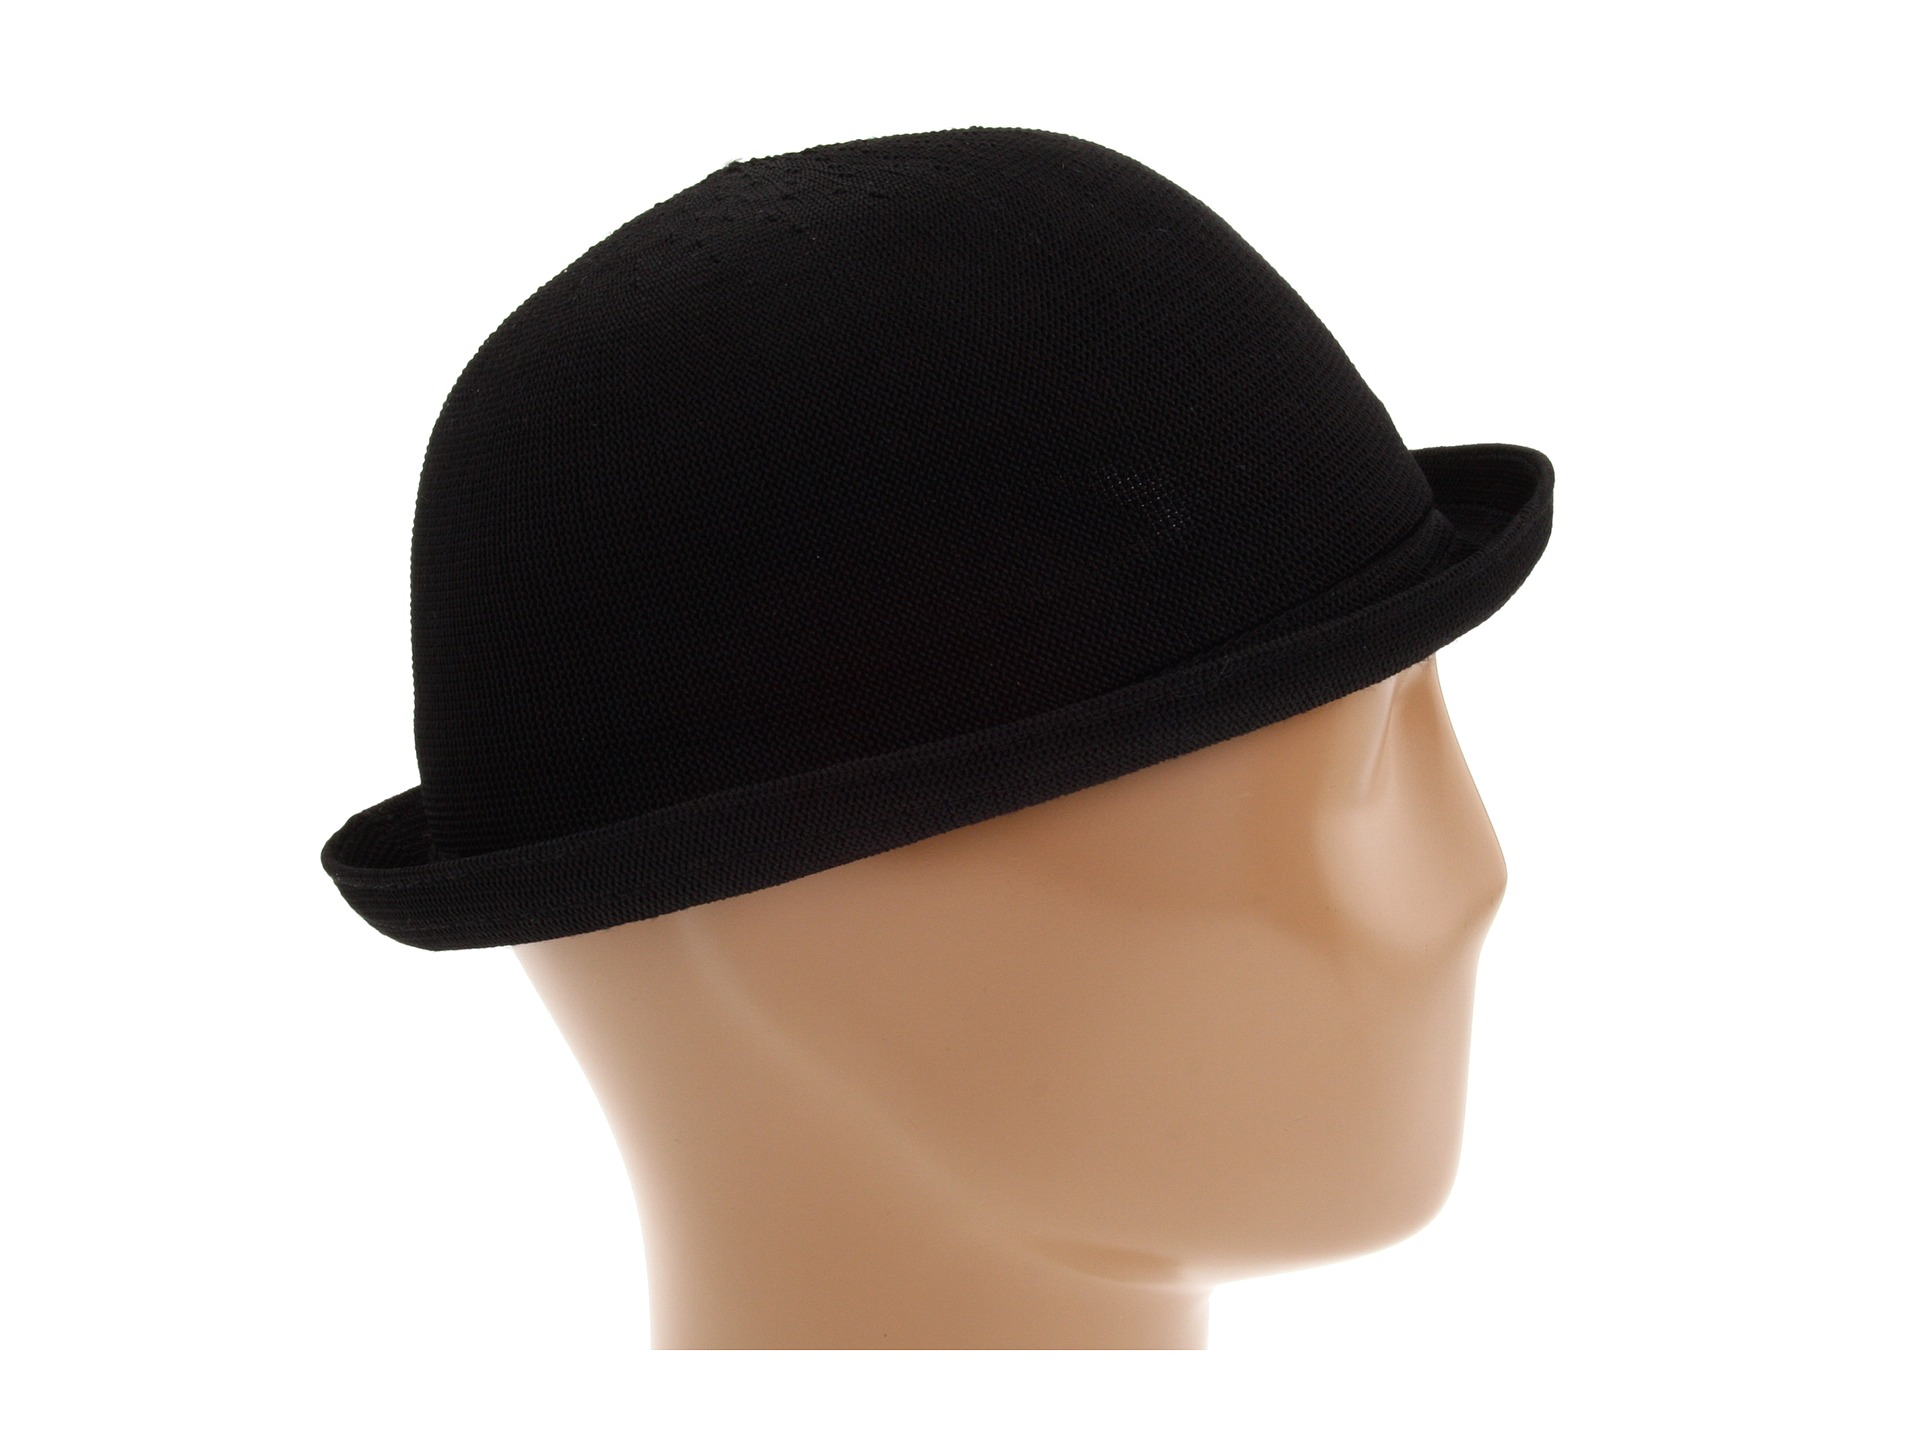 Lyst - Kangol Tropic Bombin in Black 7c238493ff6